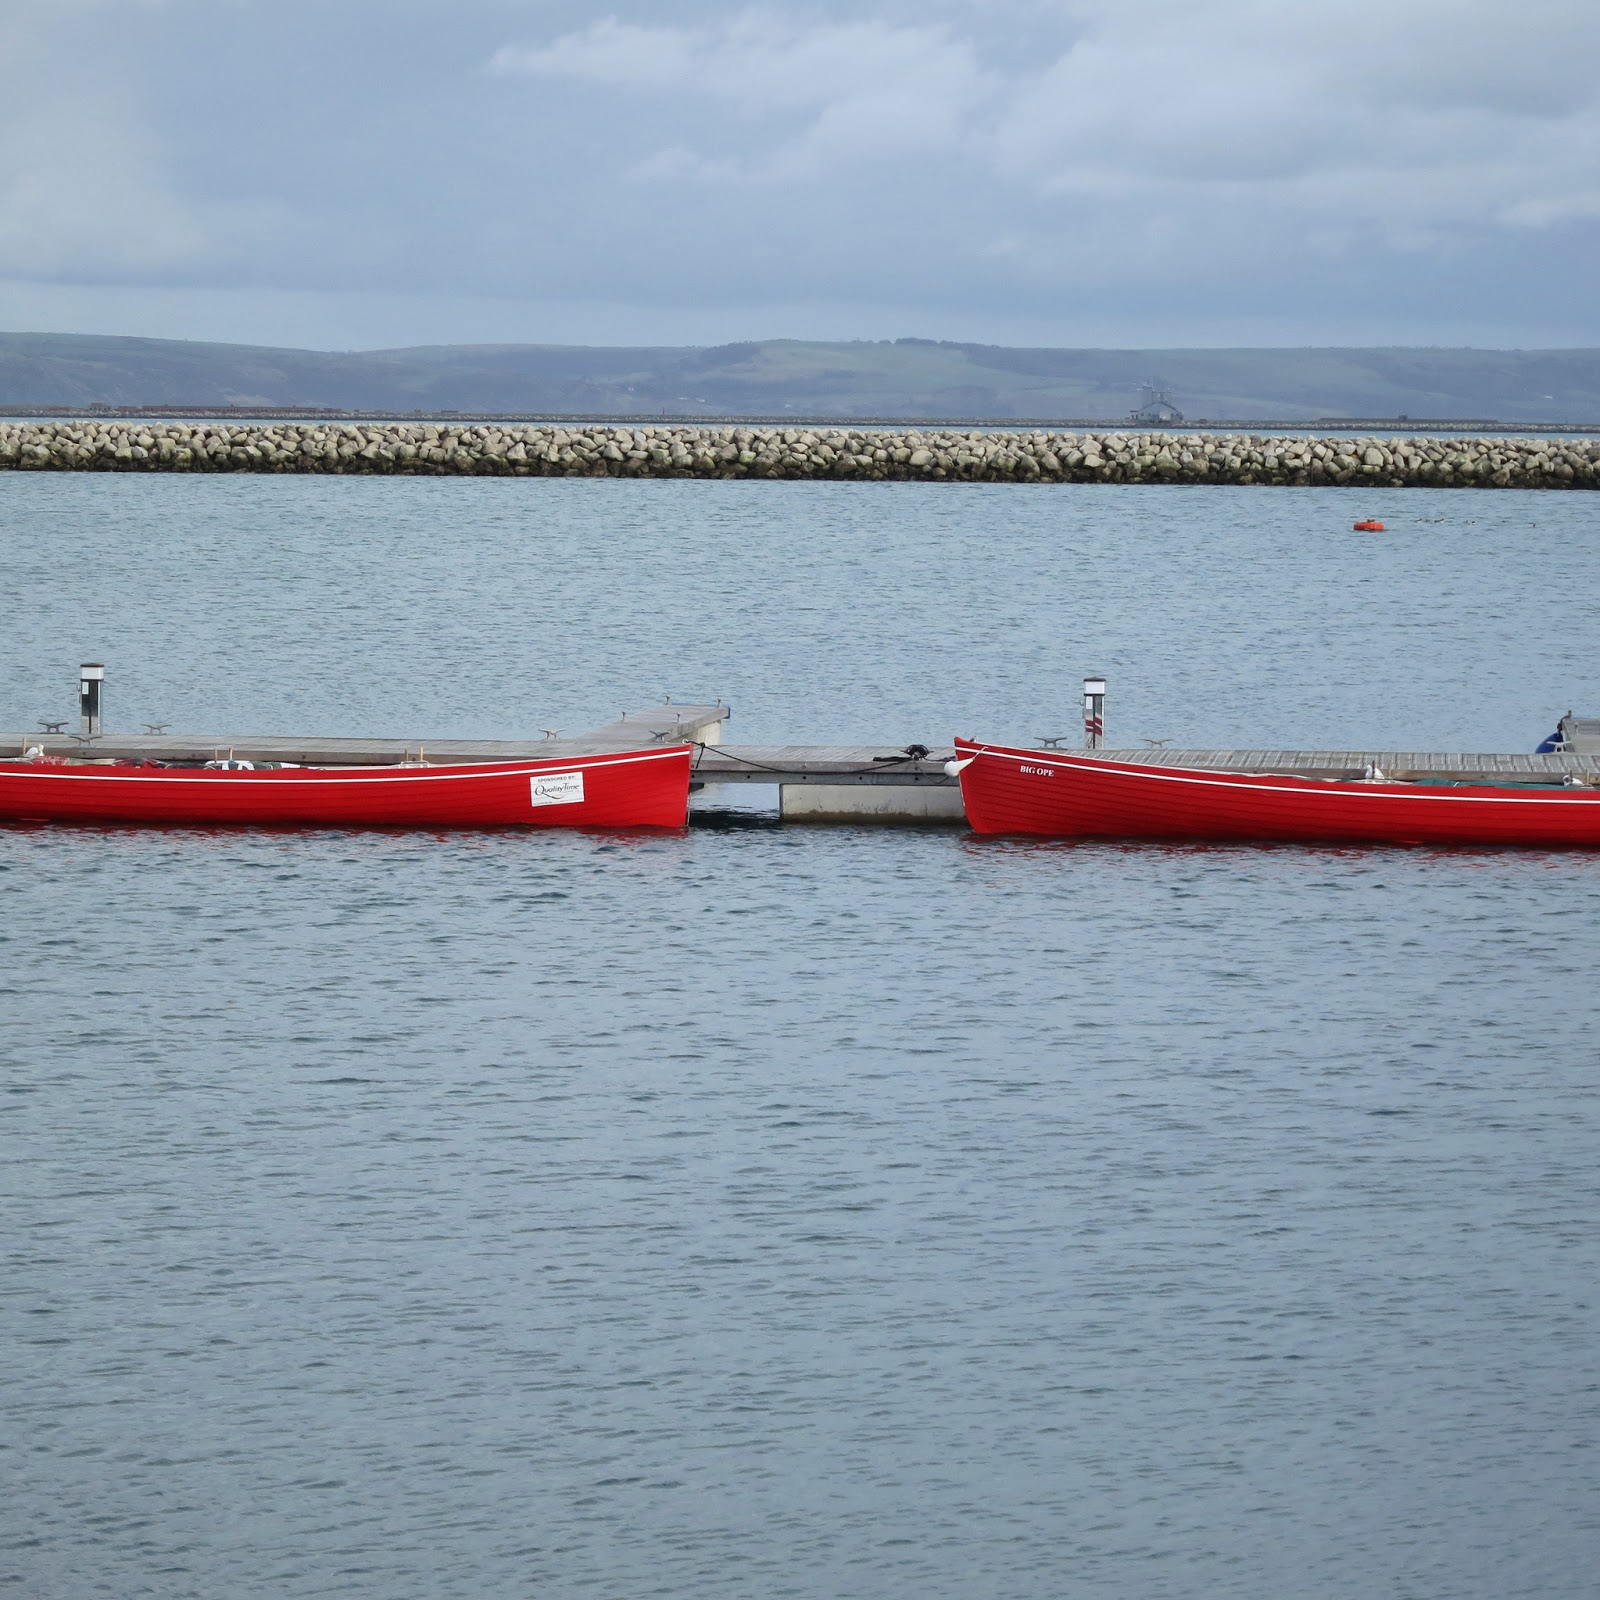 Red canoes facing each other in marina. Portland. Dorset